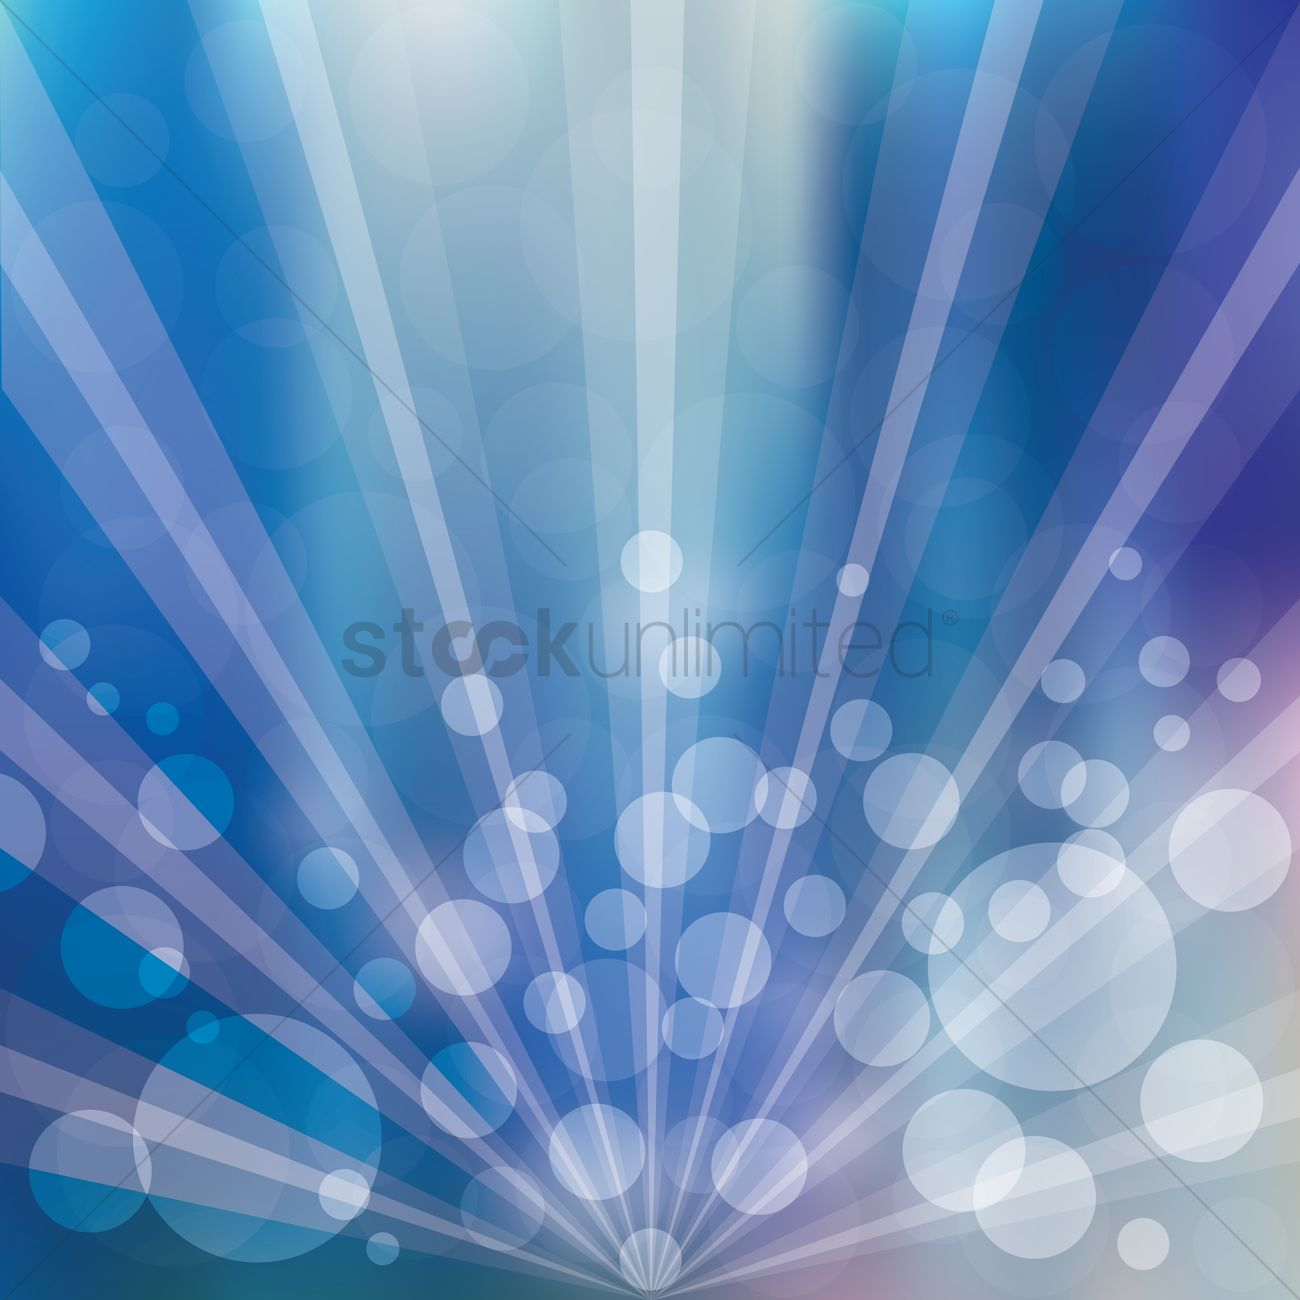 k Abstract Looped Backgrounds with Stock Footage Video